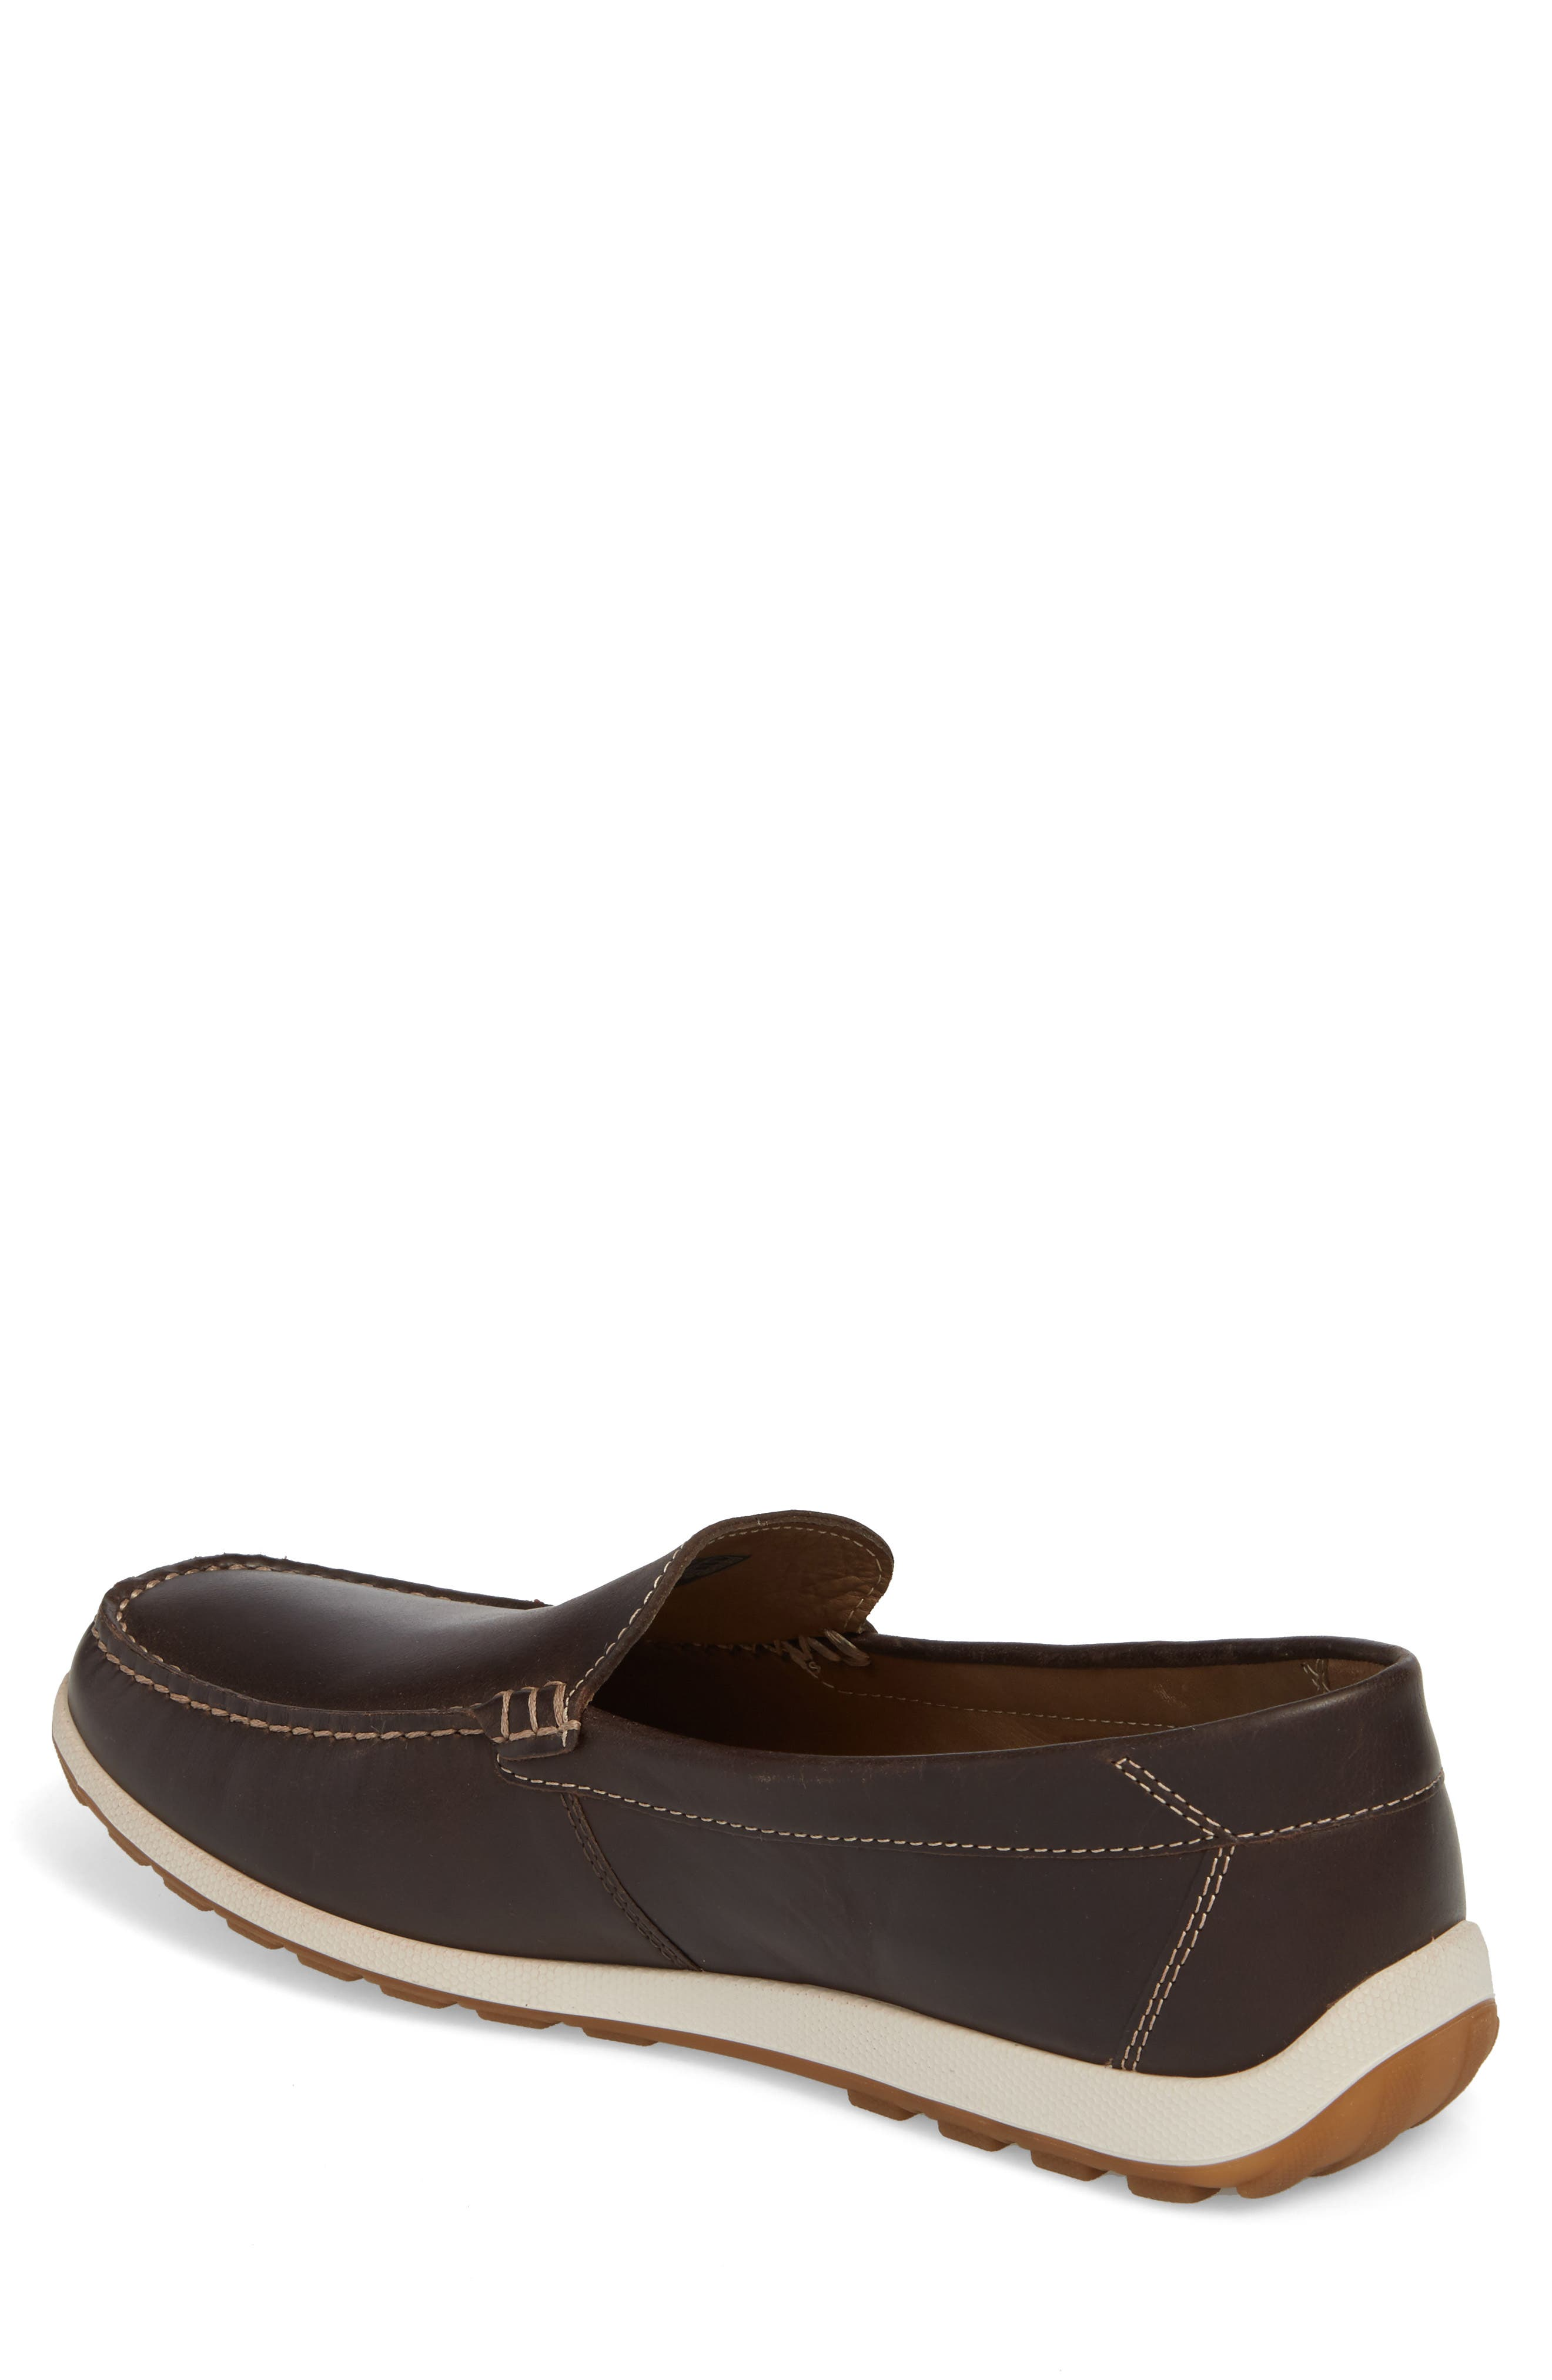 Dip Moc Toe Driving Loafer,                             Alternate thumbnail 4, color,